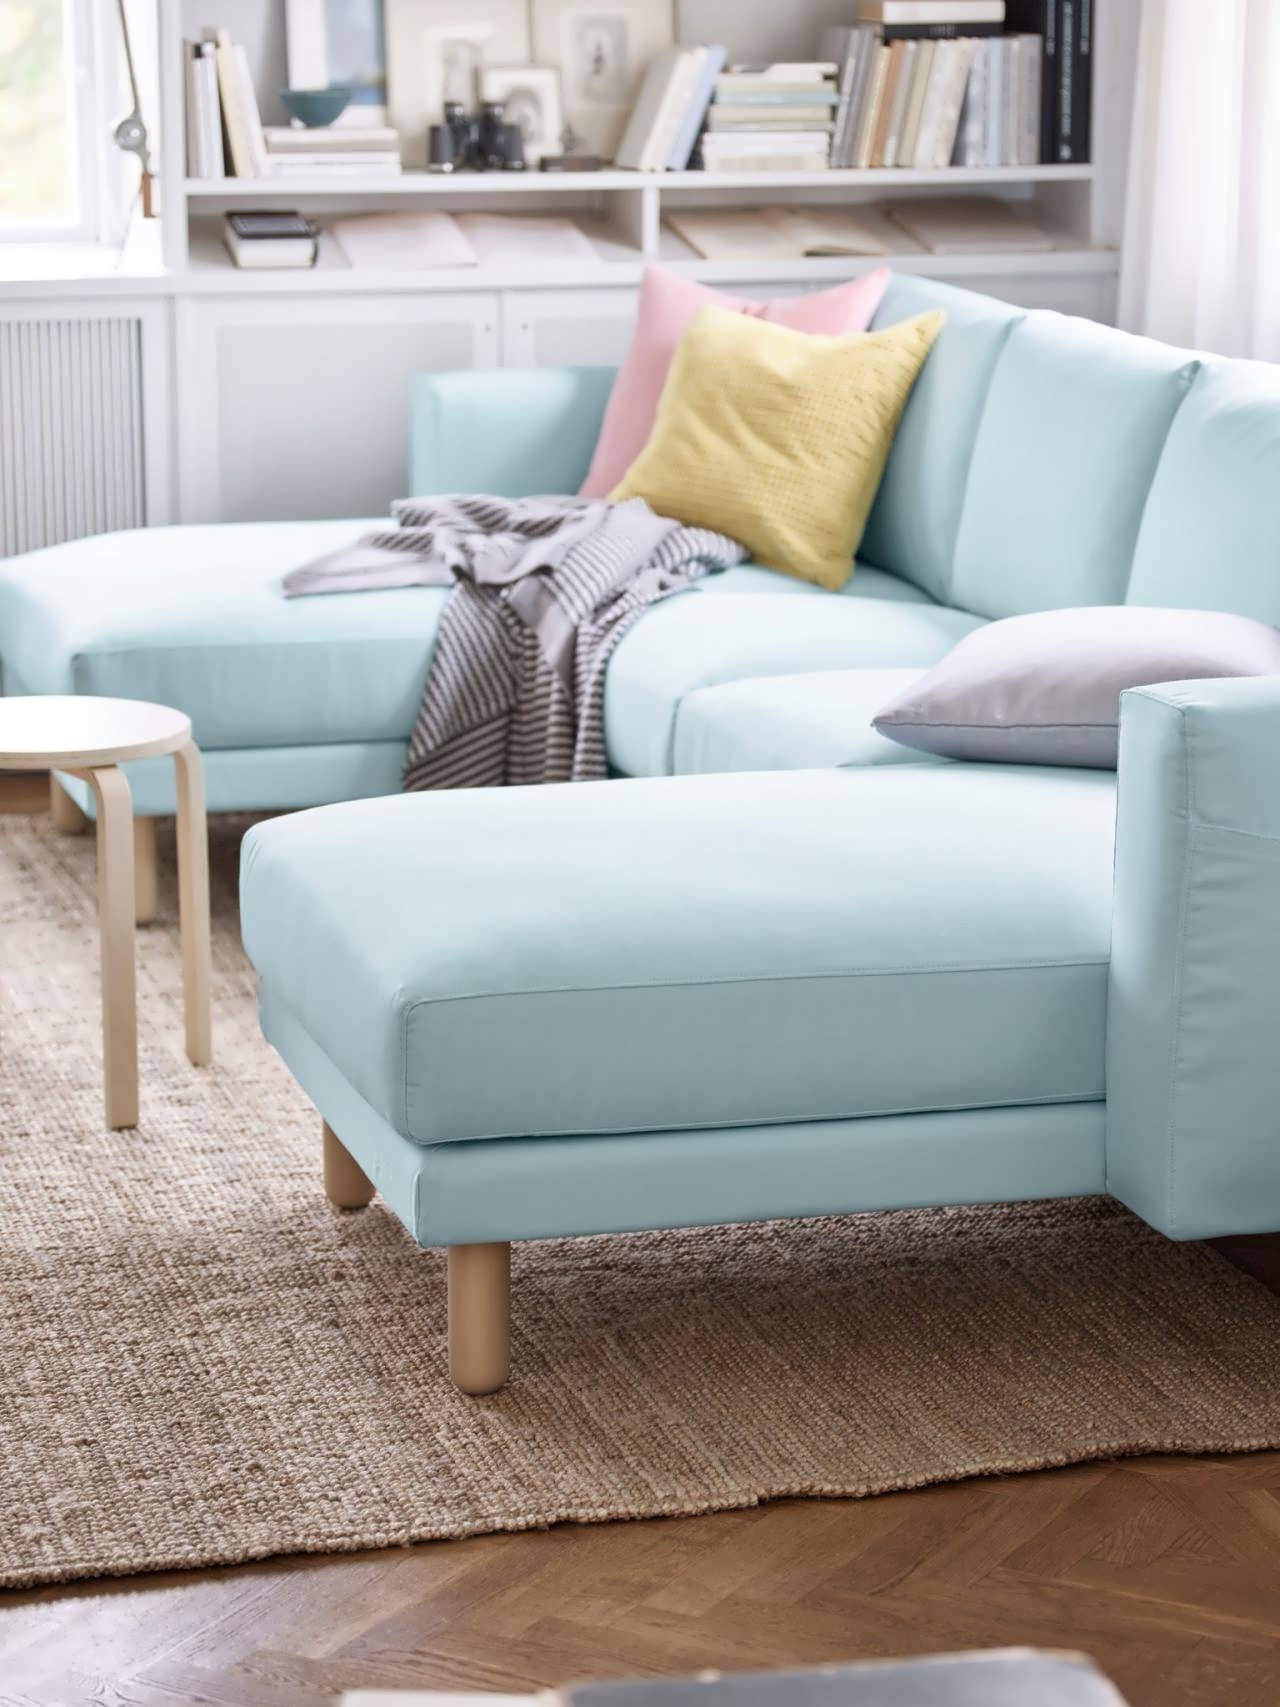 Trendy Sofa : Blue Chaise Sofa Microfiber Sectional Couch Cheap Throughout Cheap Chaise Sofas (View 11 of 15)